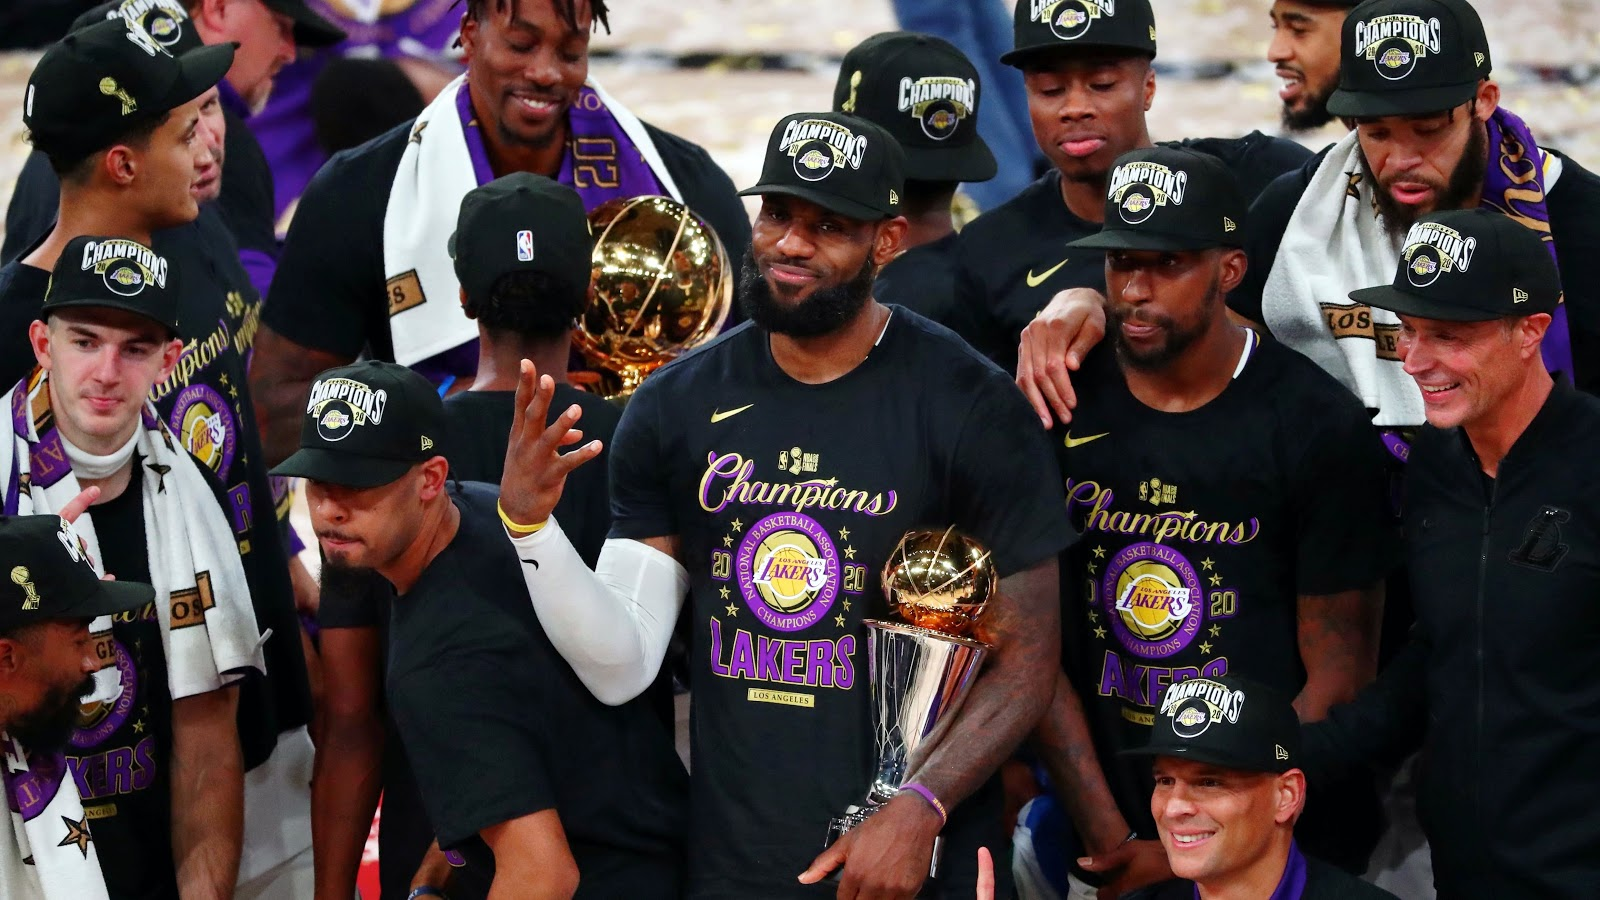 Lakers Win Their 17th NBA Championship, Beating The Miami Heat In Game 6,  106-93